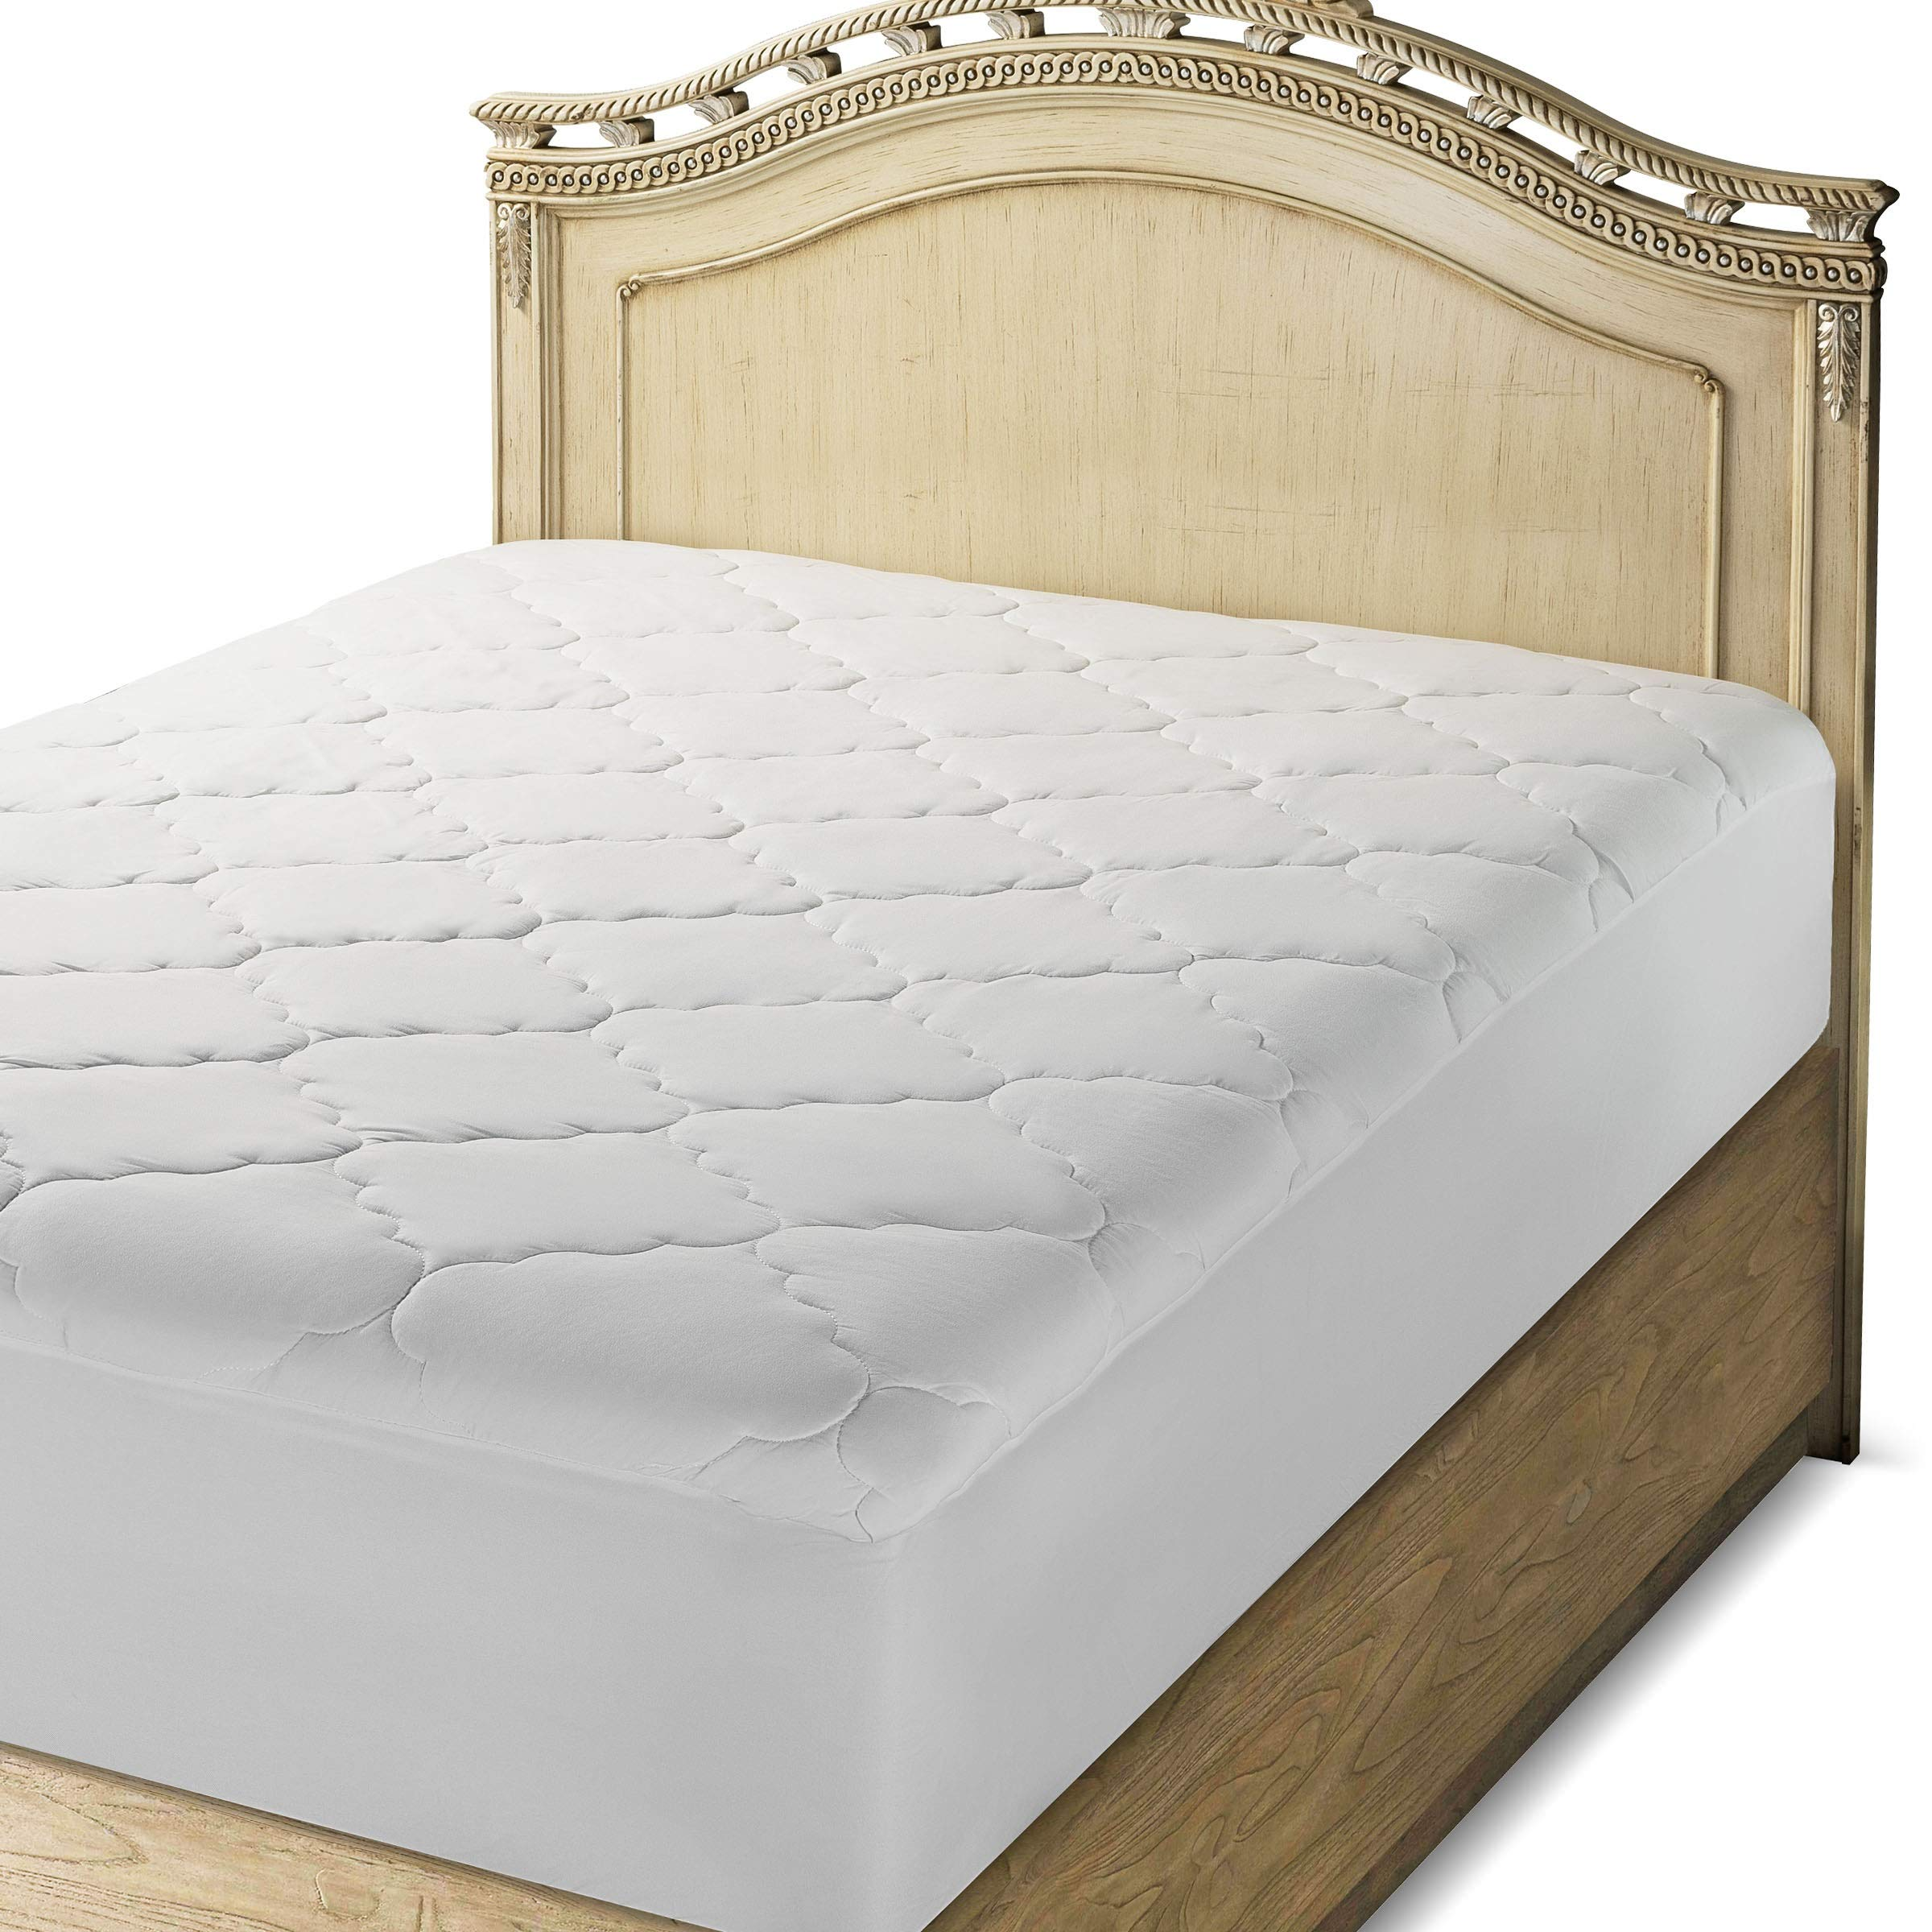 Best beds for penetration congratulate